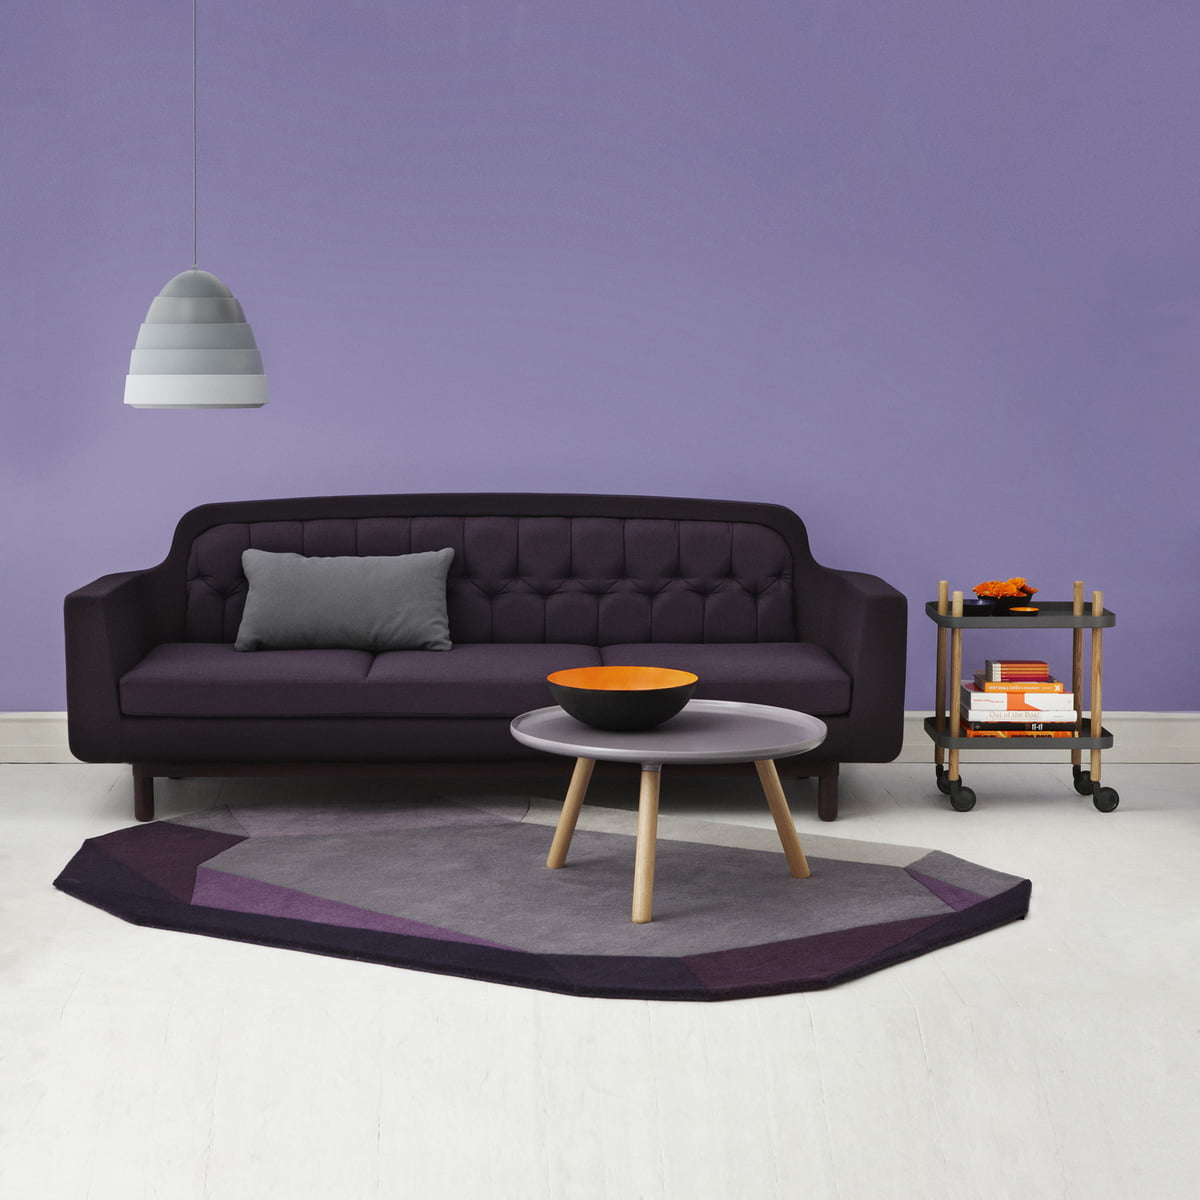 Full Size of Lilah Queen Sleeper Sofa Emerald Craft Lilac Covers Lila Ikea Chesterfield Samt 3 Piece Suite Set Chair Bed Raymour And Flanigan Throws Cushions Landhaus Sofa Sofa Lila